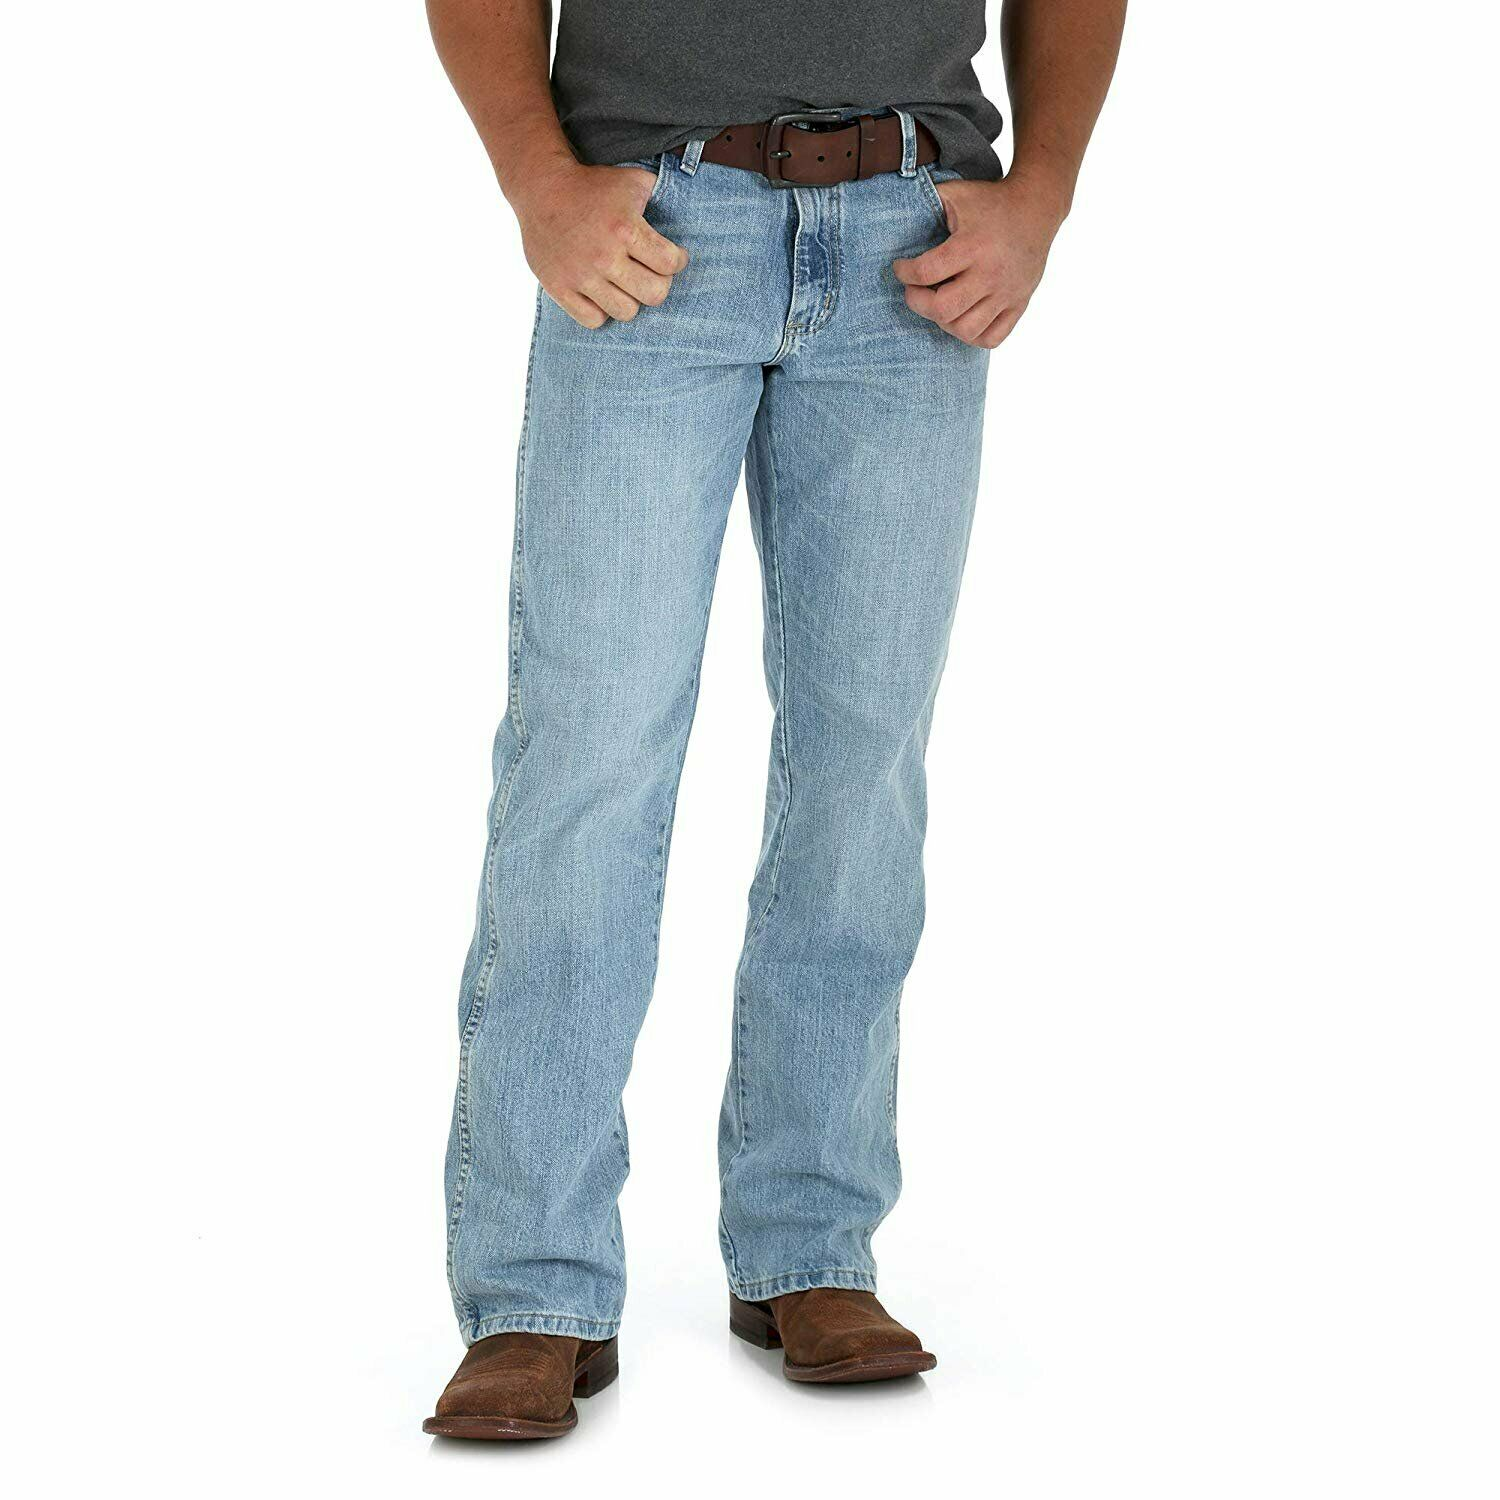 e470efe0 Crest Wrangler Men's Retro Relaxed-Fit Bootcut Jean - WRT20CR nqilps636- Jeans